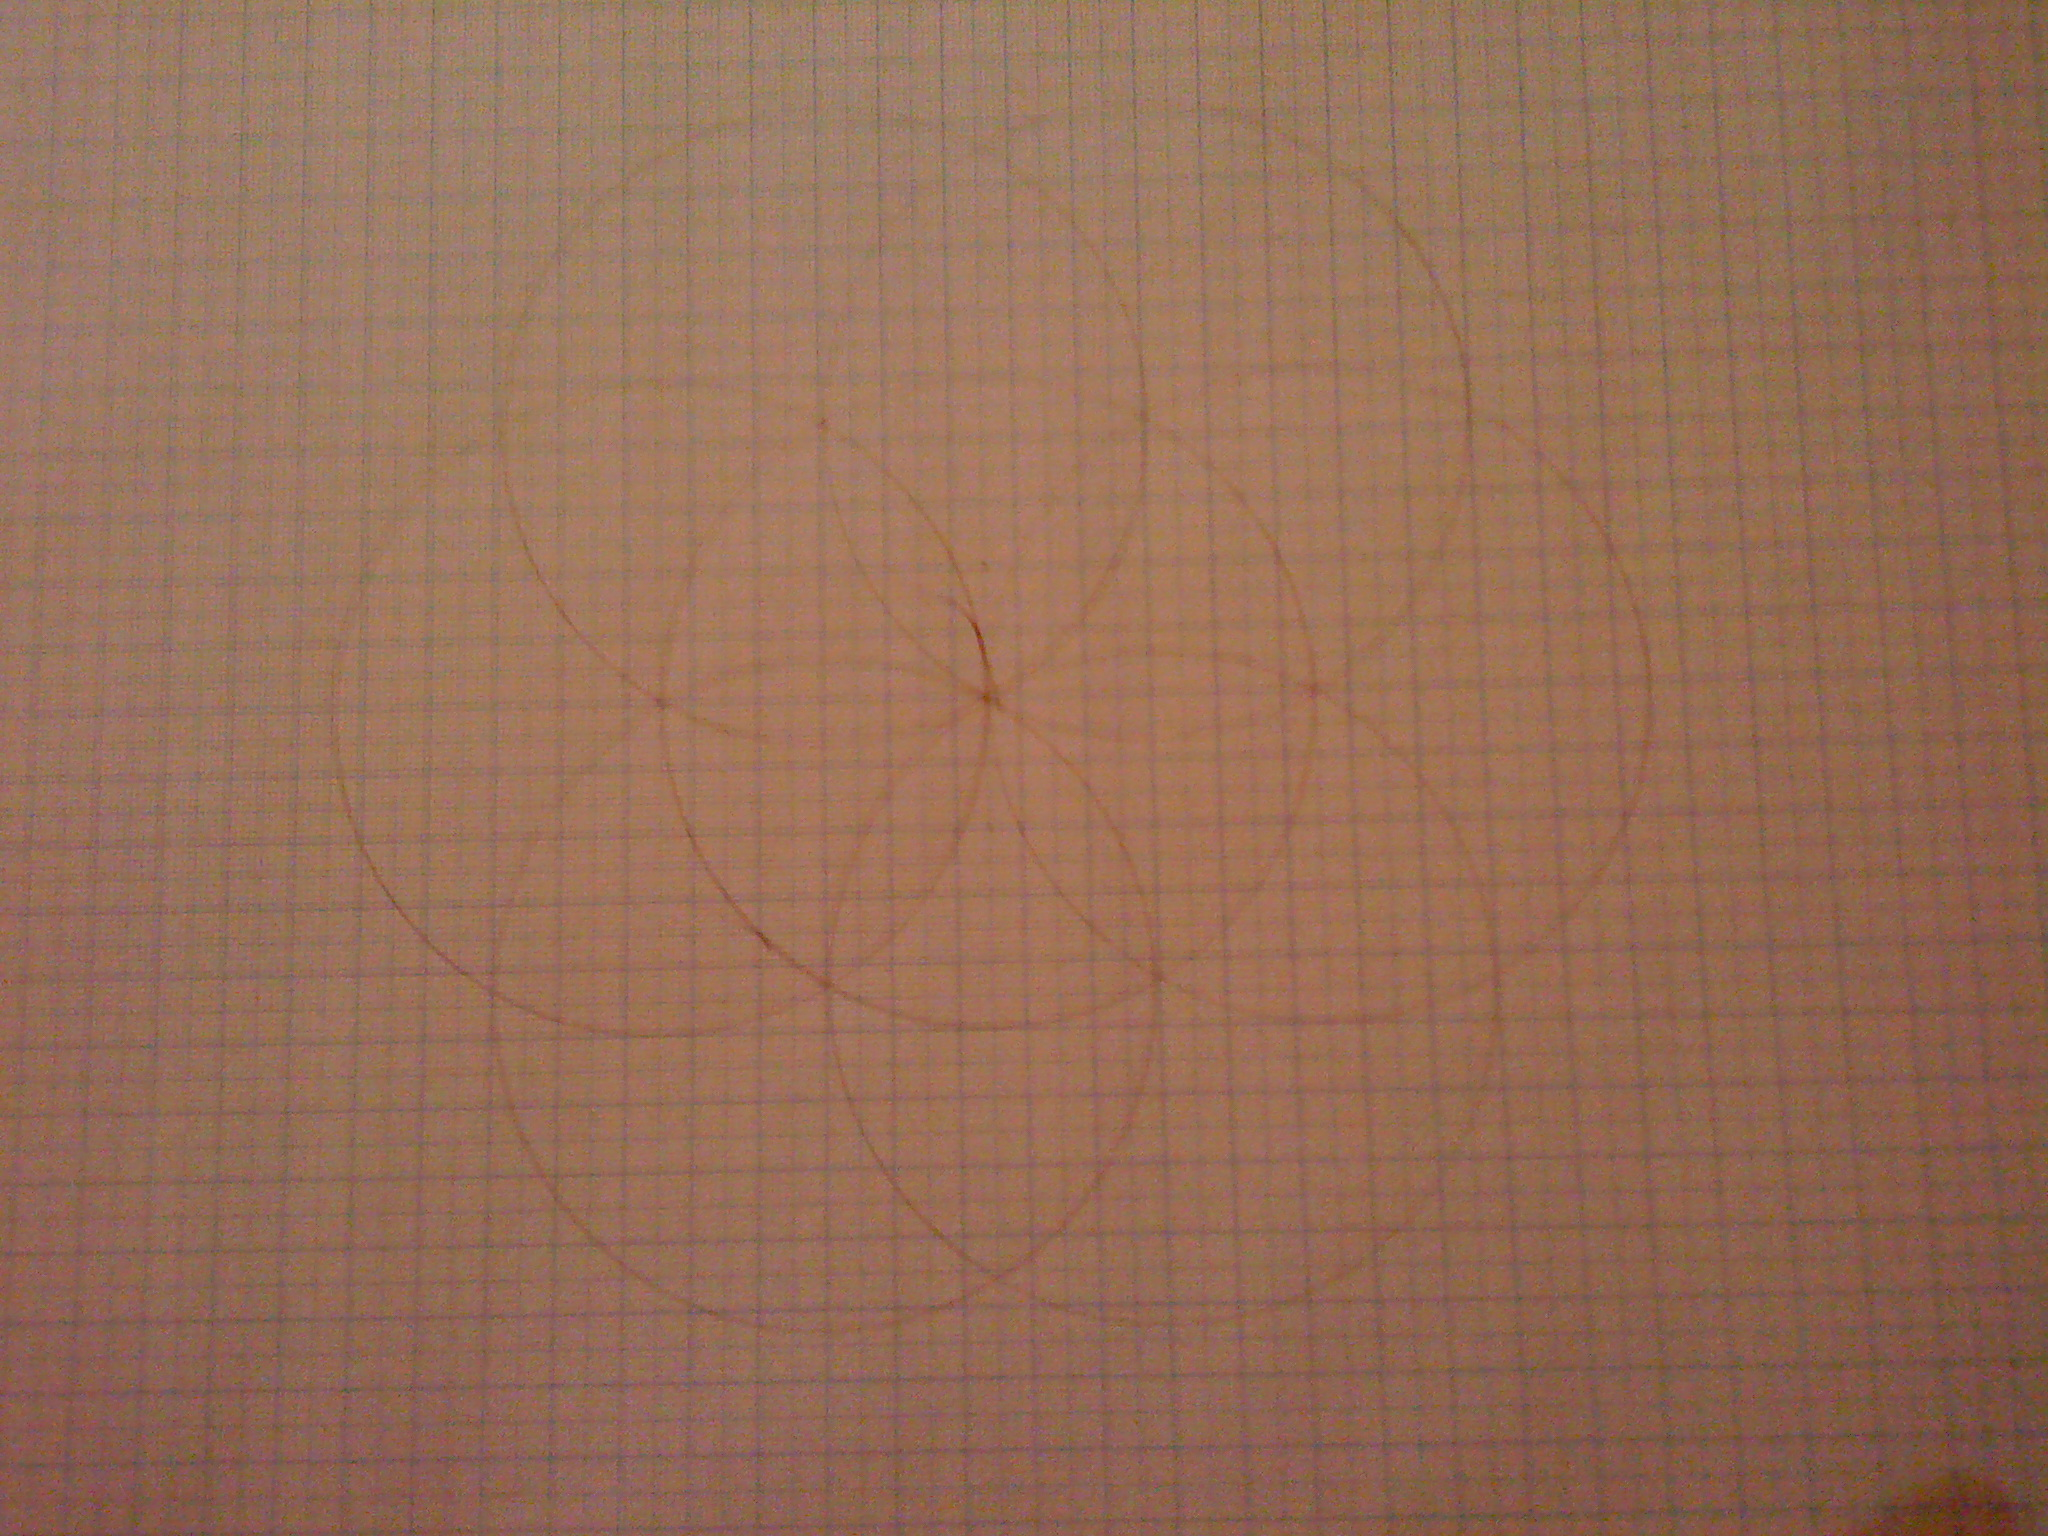 circles overlapping but spreading too